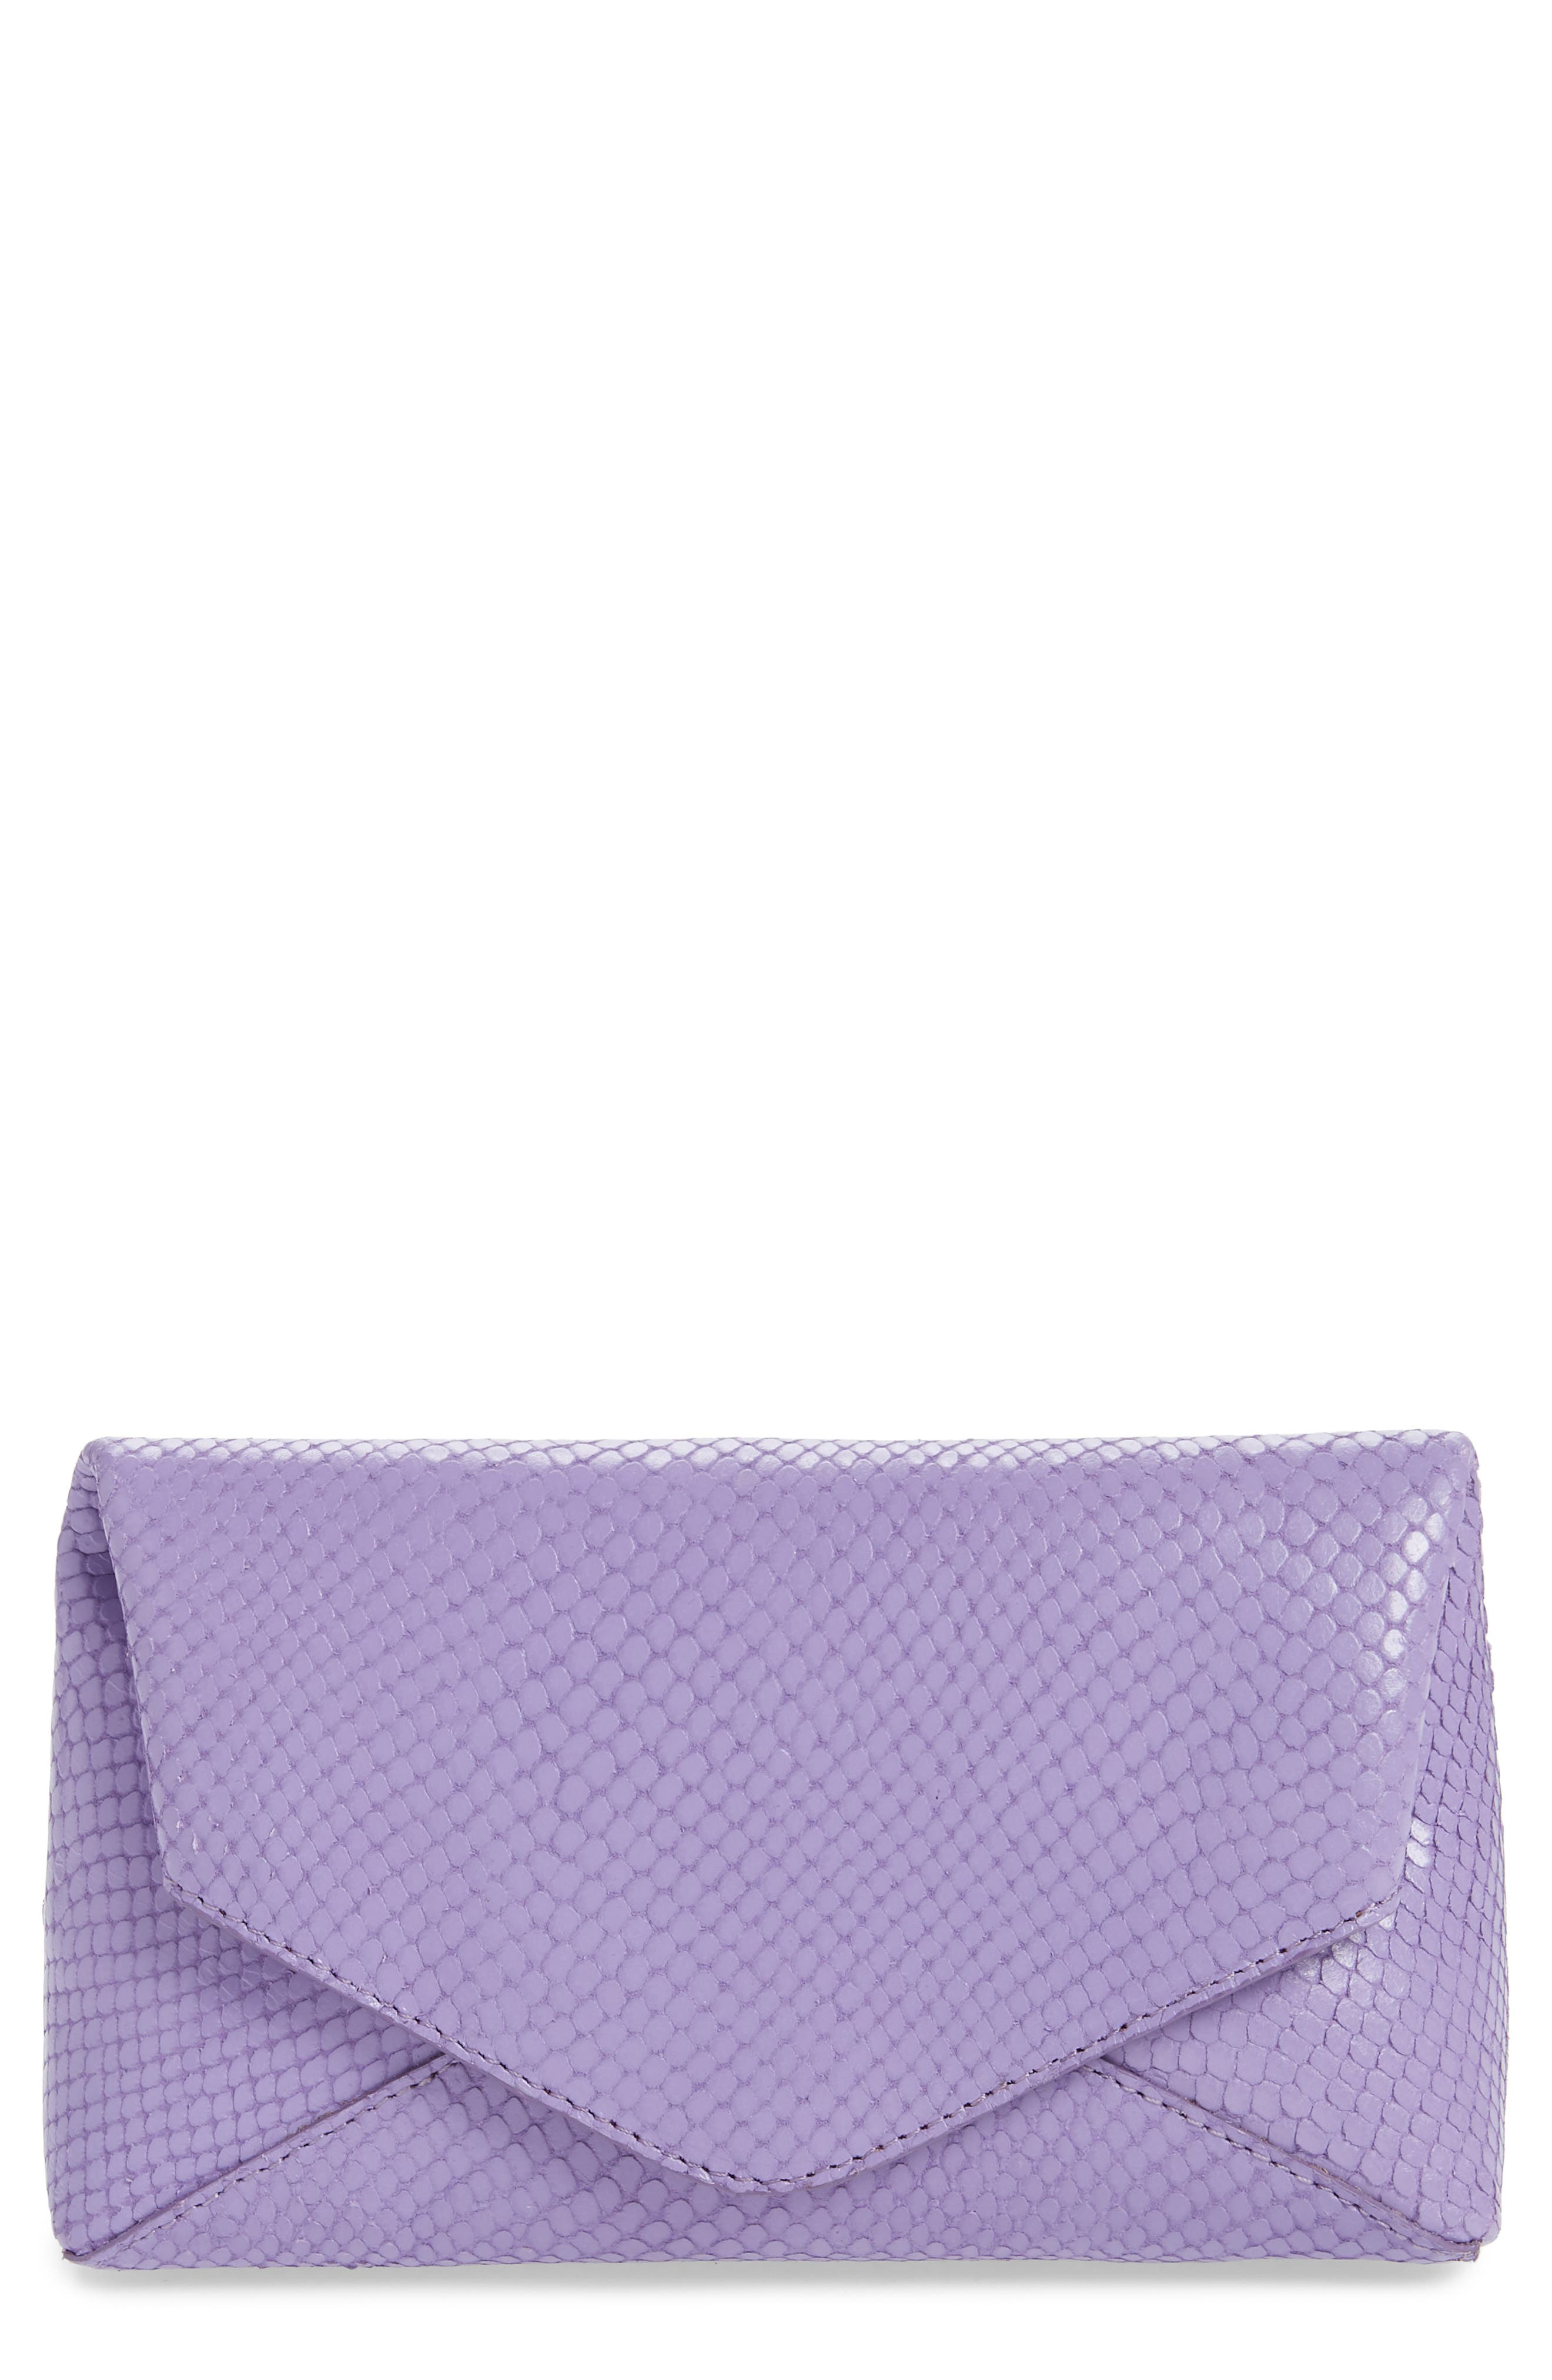 ,                             Small Python Embossed Leather Envelope Clutch,                             Main thumbnail 1, color,                             LILAC